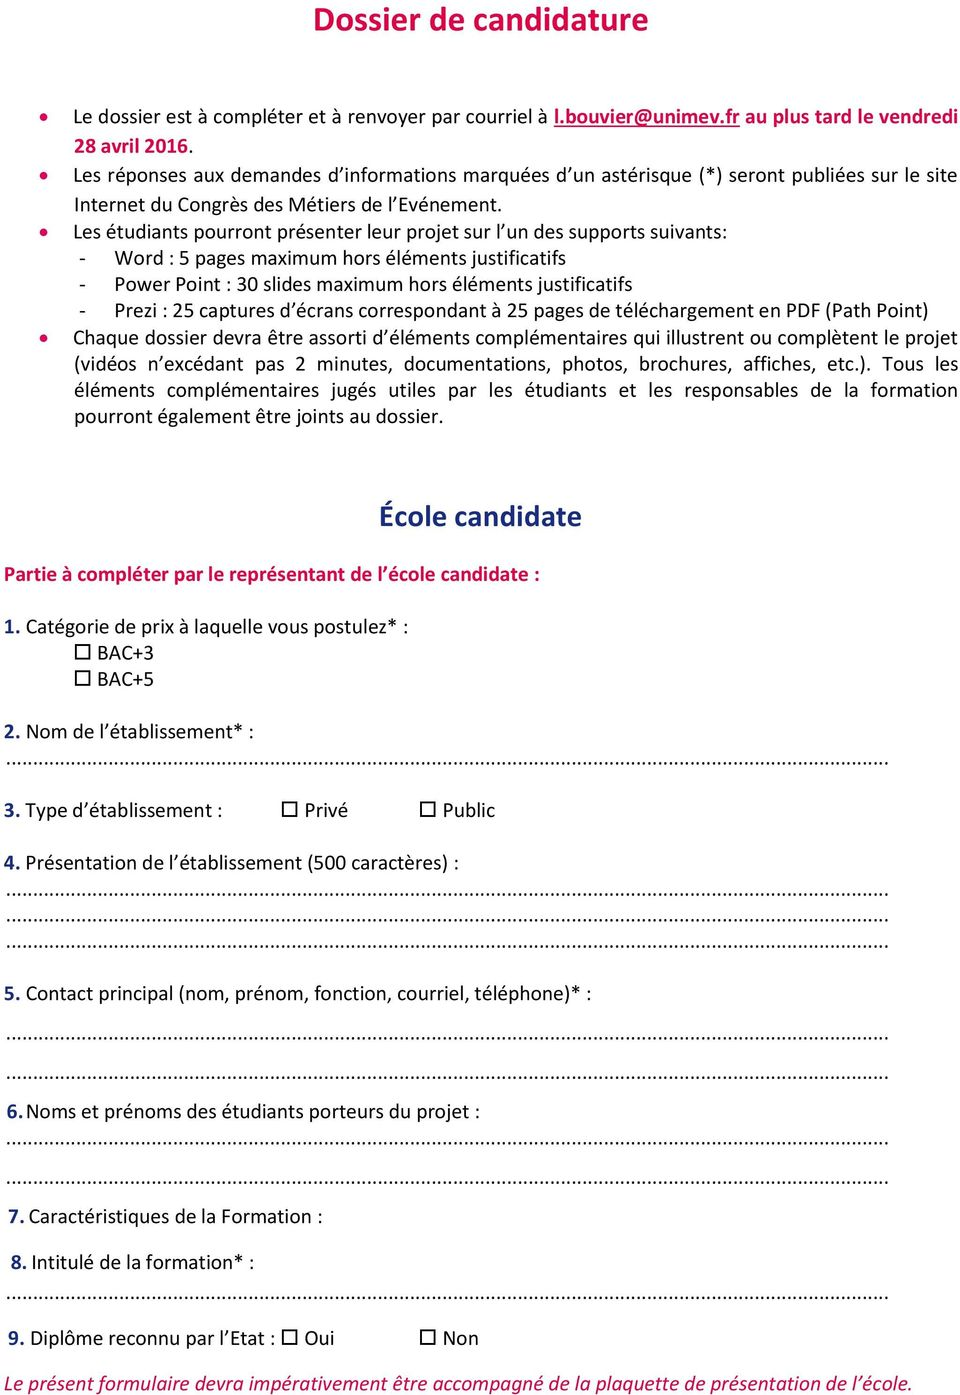 Les étudiants pourront présenter leur projet sur l un des supports suivants: - Word : 5 pages maximum hors éléments justificatifs - Power Point : 30 slides maximum hors éléments justificatifs - Prezi